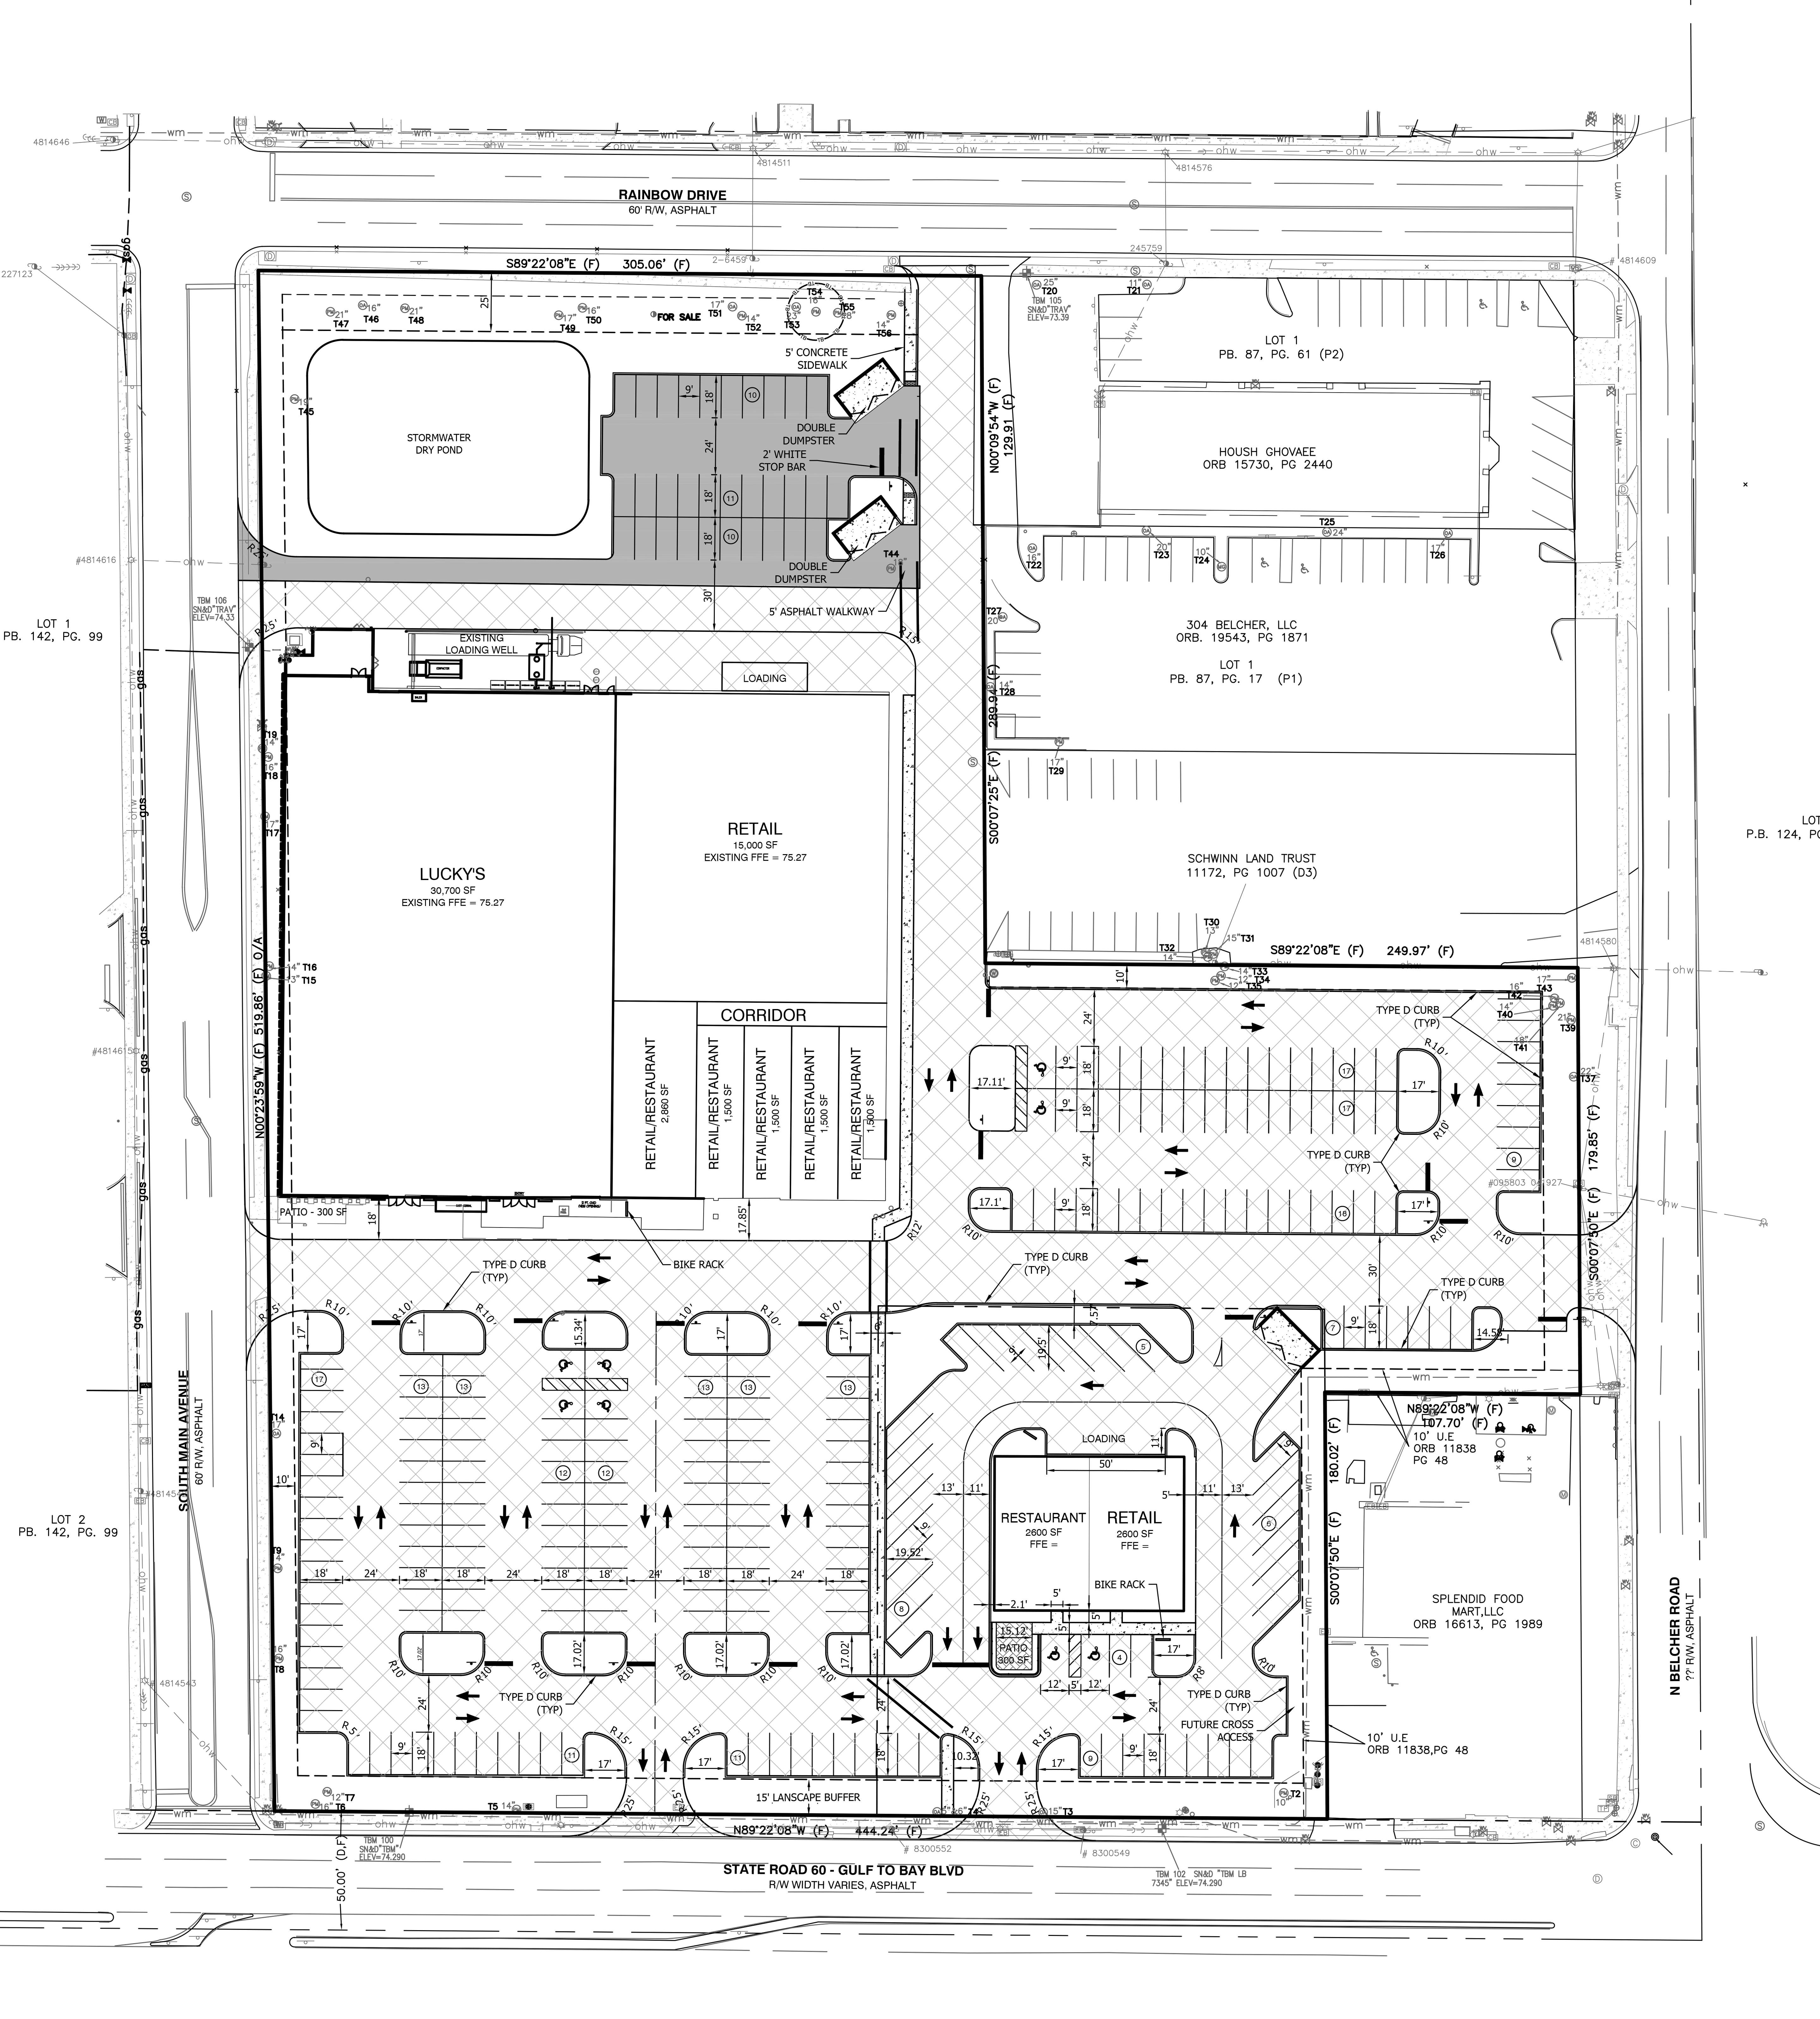 Clearwater Florida Map.Former Albertsons Redevelopment Gulf To Bay Belcher Rd